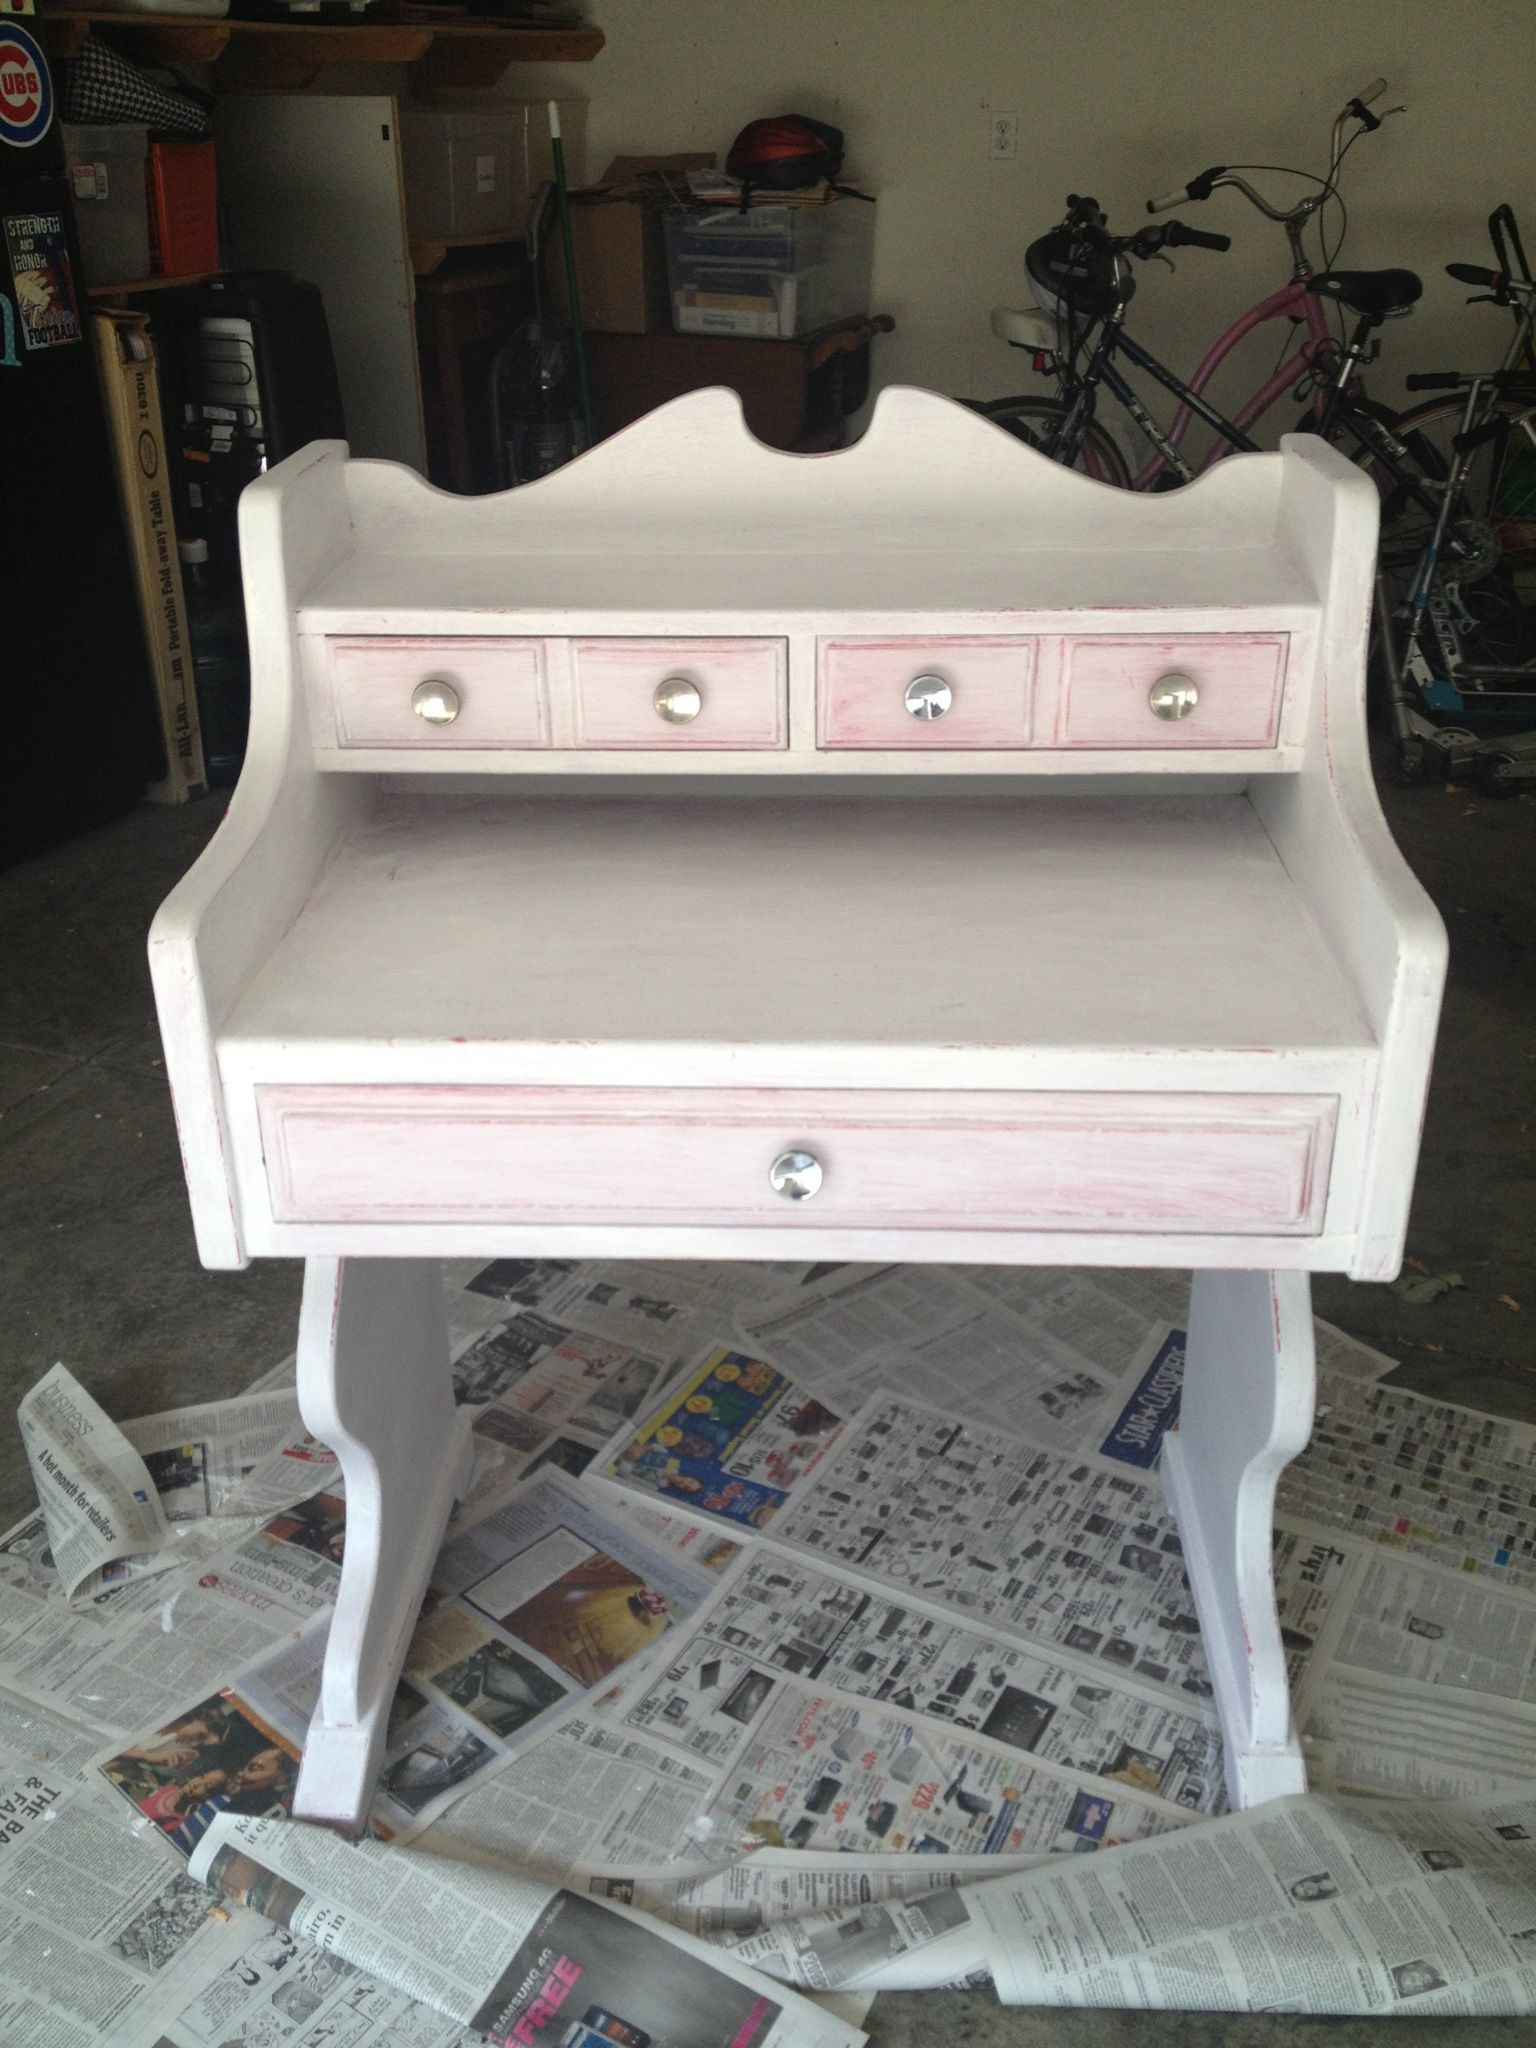 Give your furniture an antiqued or distressed look ladulcelavie - Give Your Furniture An Antiqued Or Distressed Look Ladulcelavie 6